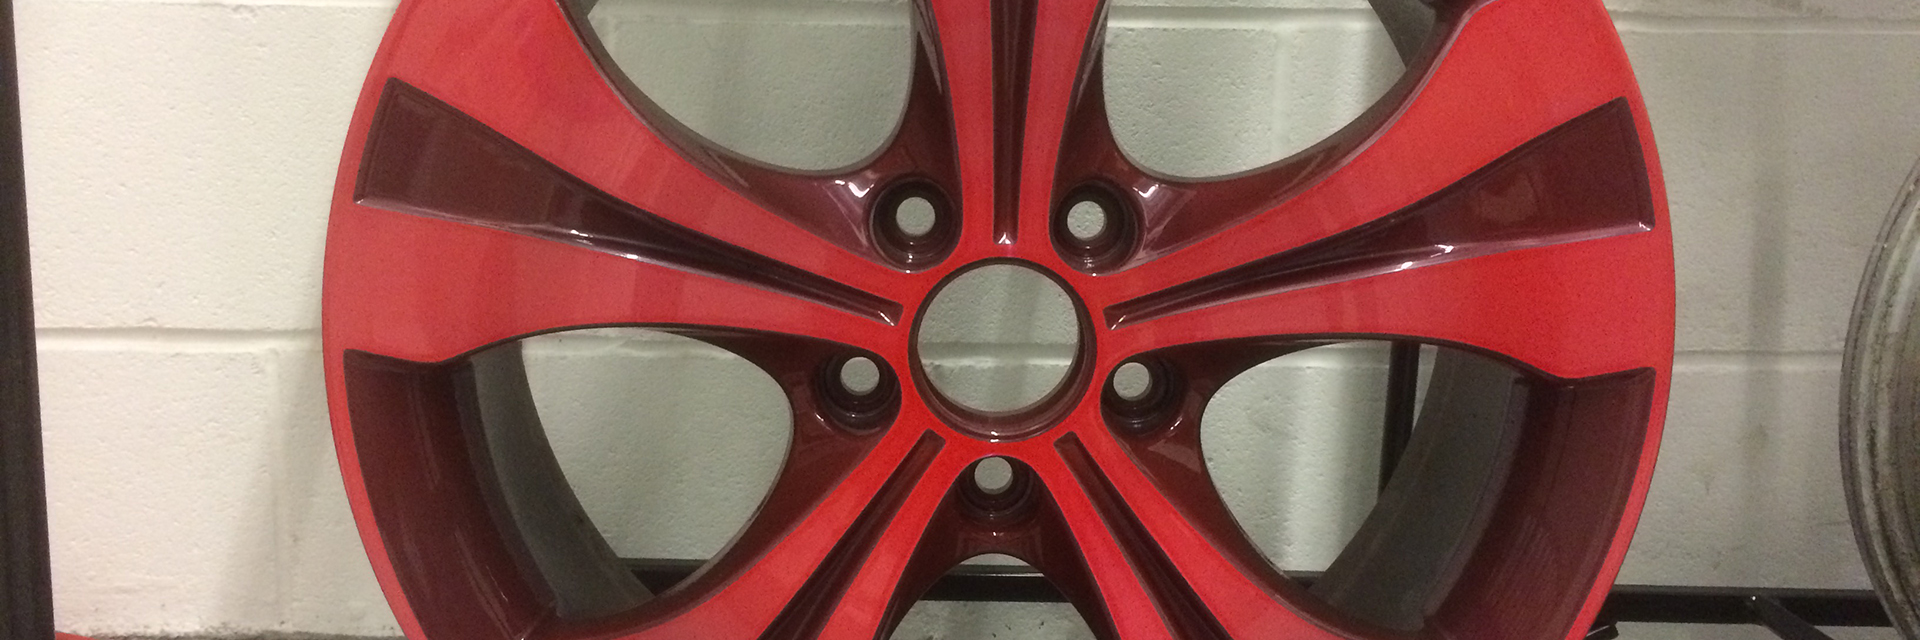 Red tinted alloy wheel with Tintrite from Ayce Systems